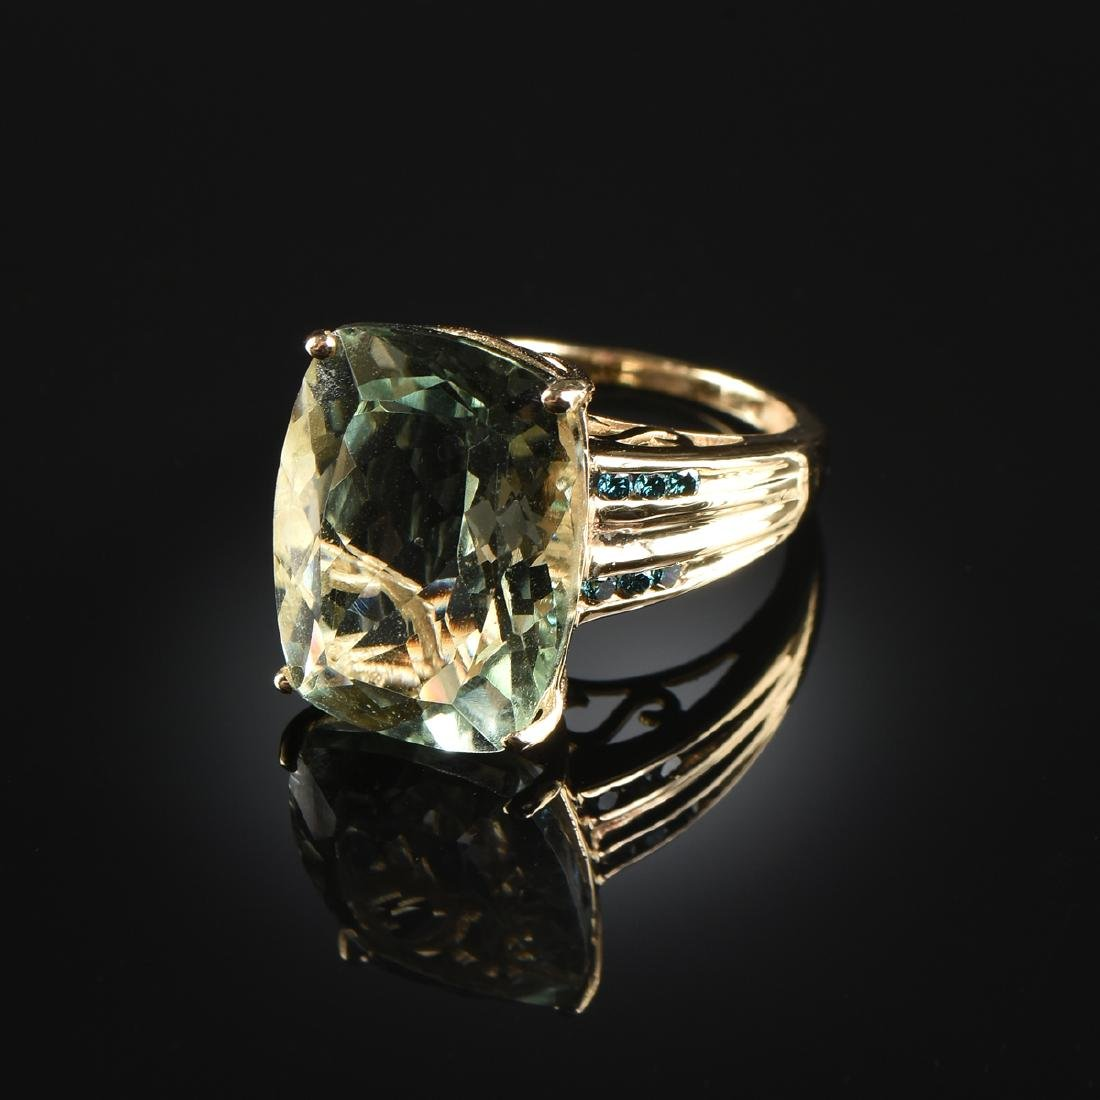 A 14K YELLOW GOLD, GREEN QUARTZ, AND SAPPHIRE LADY'S